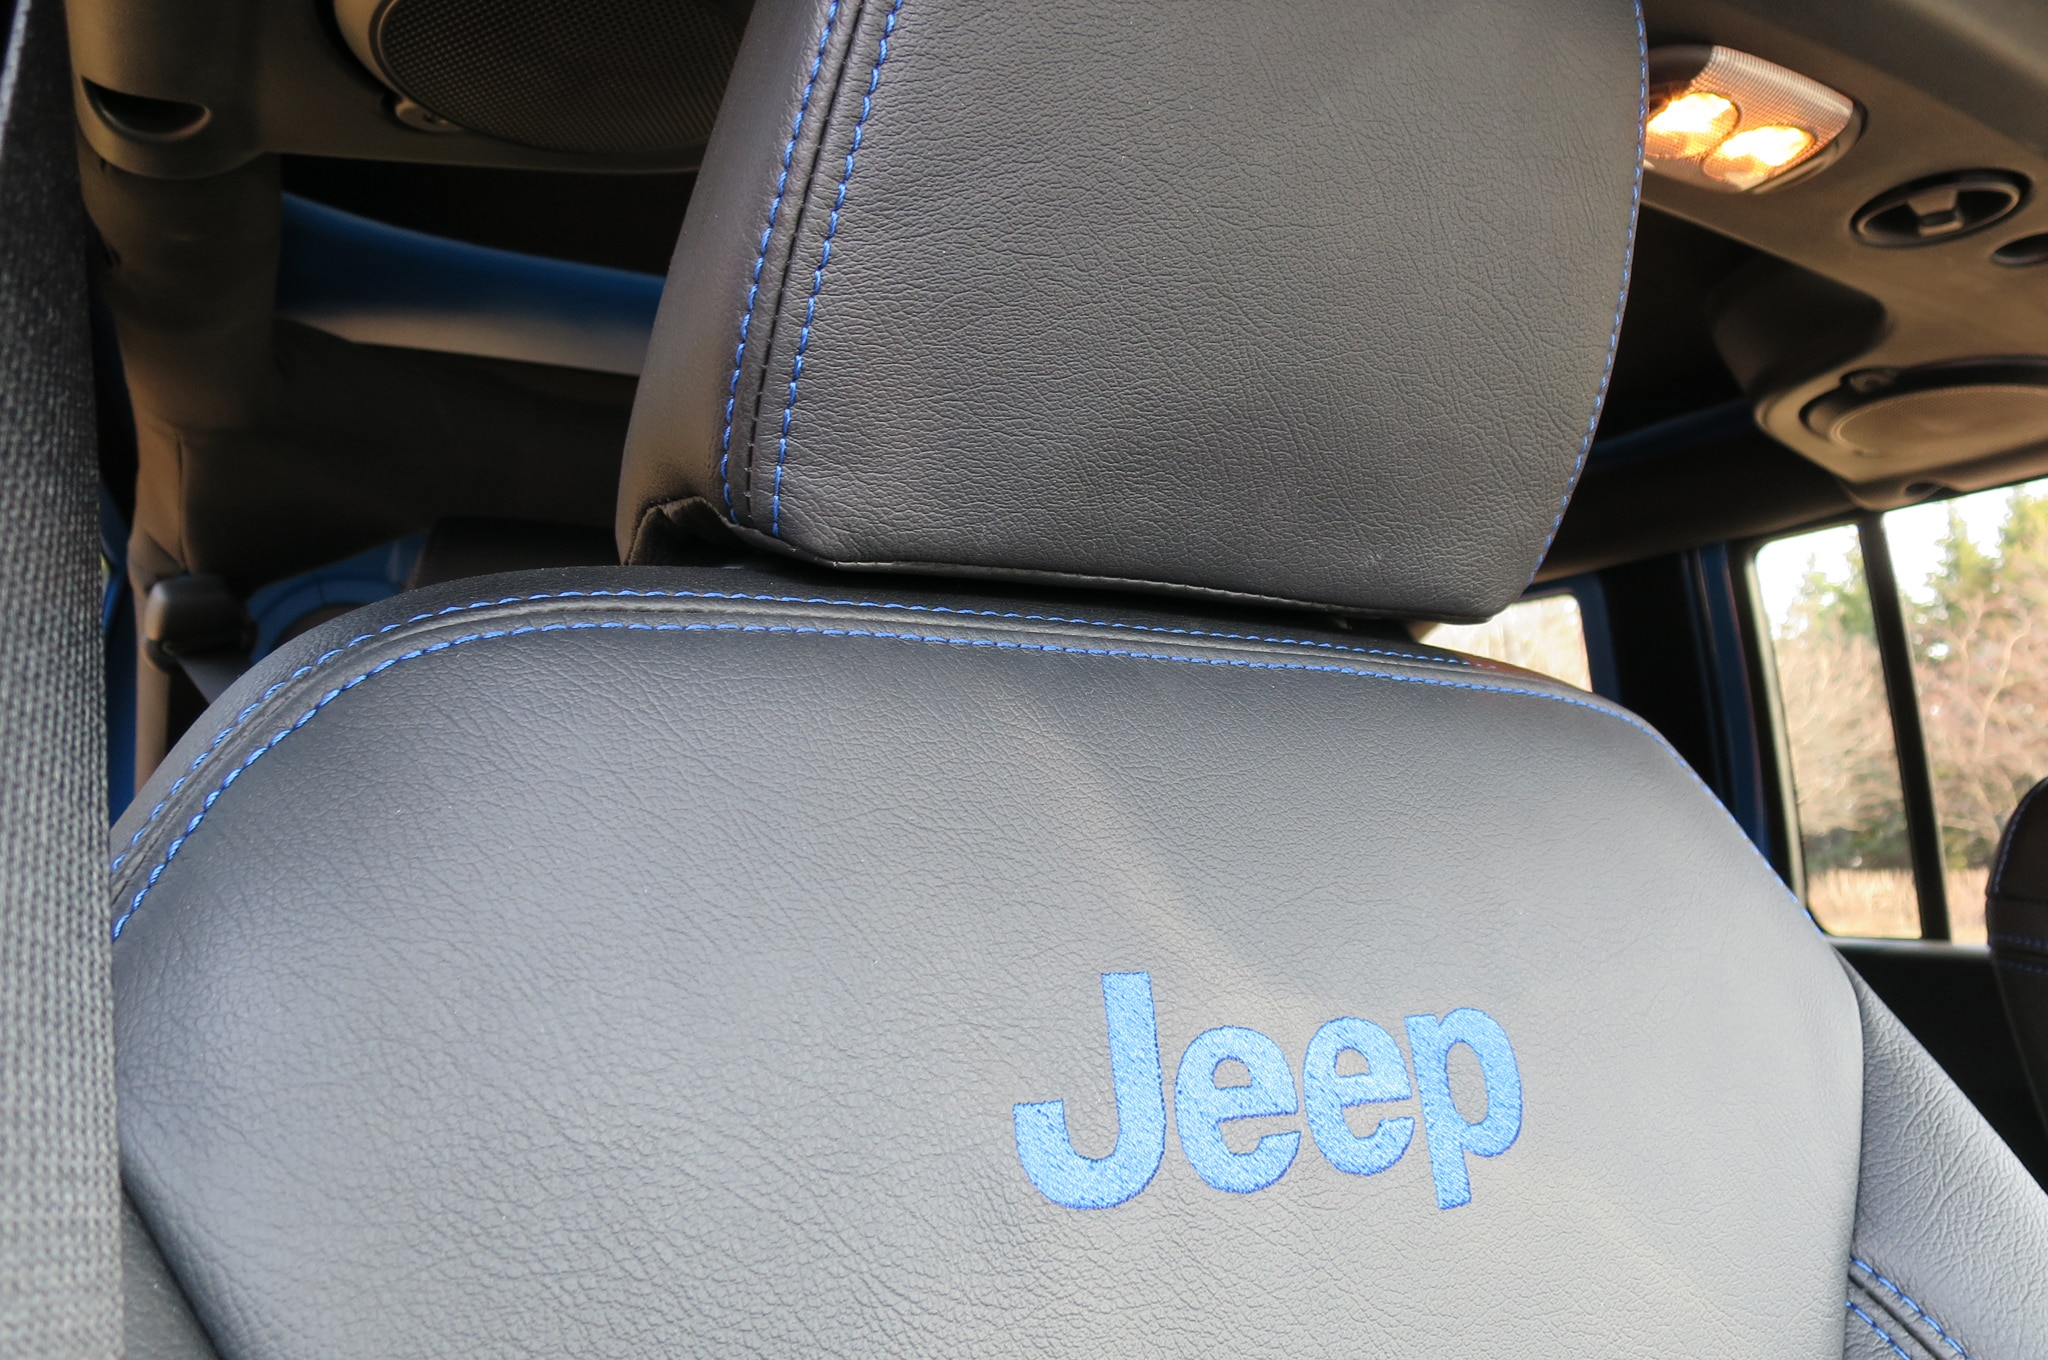 Jeep Wrangler Maximum Performance Concept interior seats